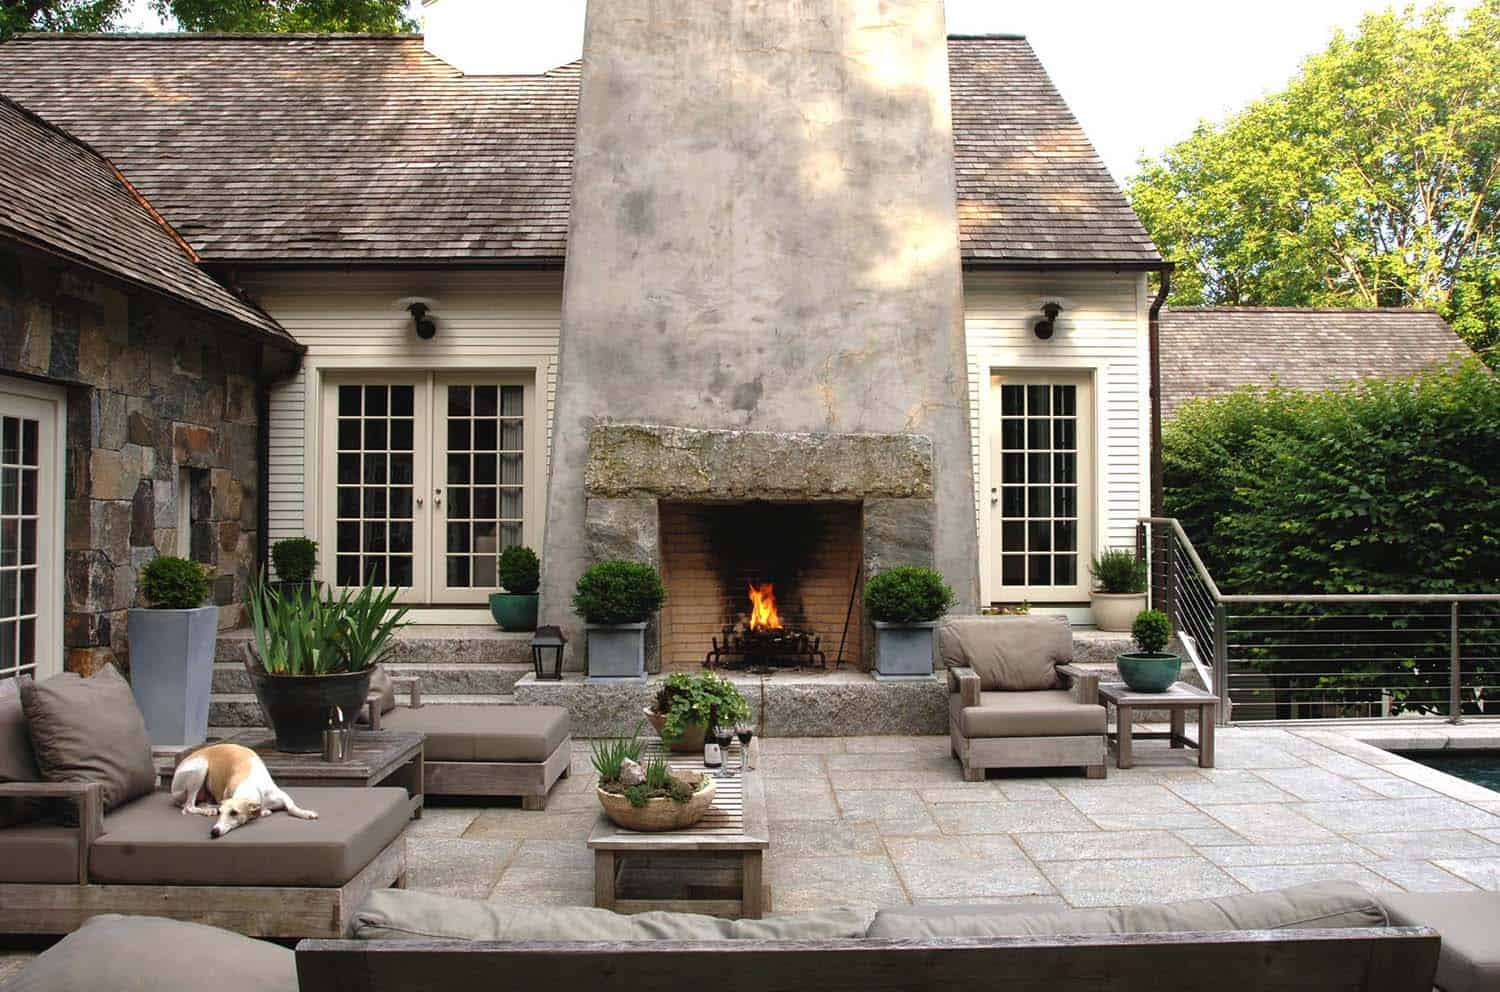 30+ Irresistible outdoor fireplace ideas that will leave ... on Outdoor Fireplaces Ideas  id=36785